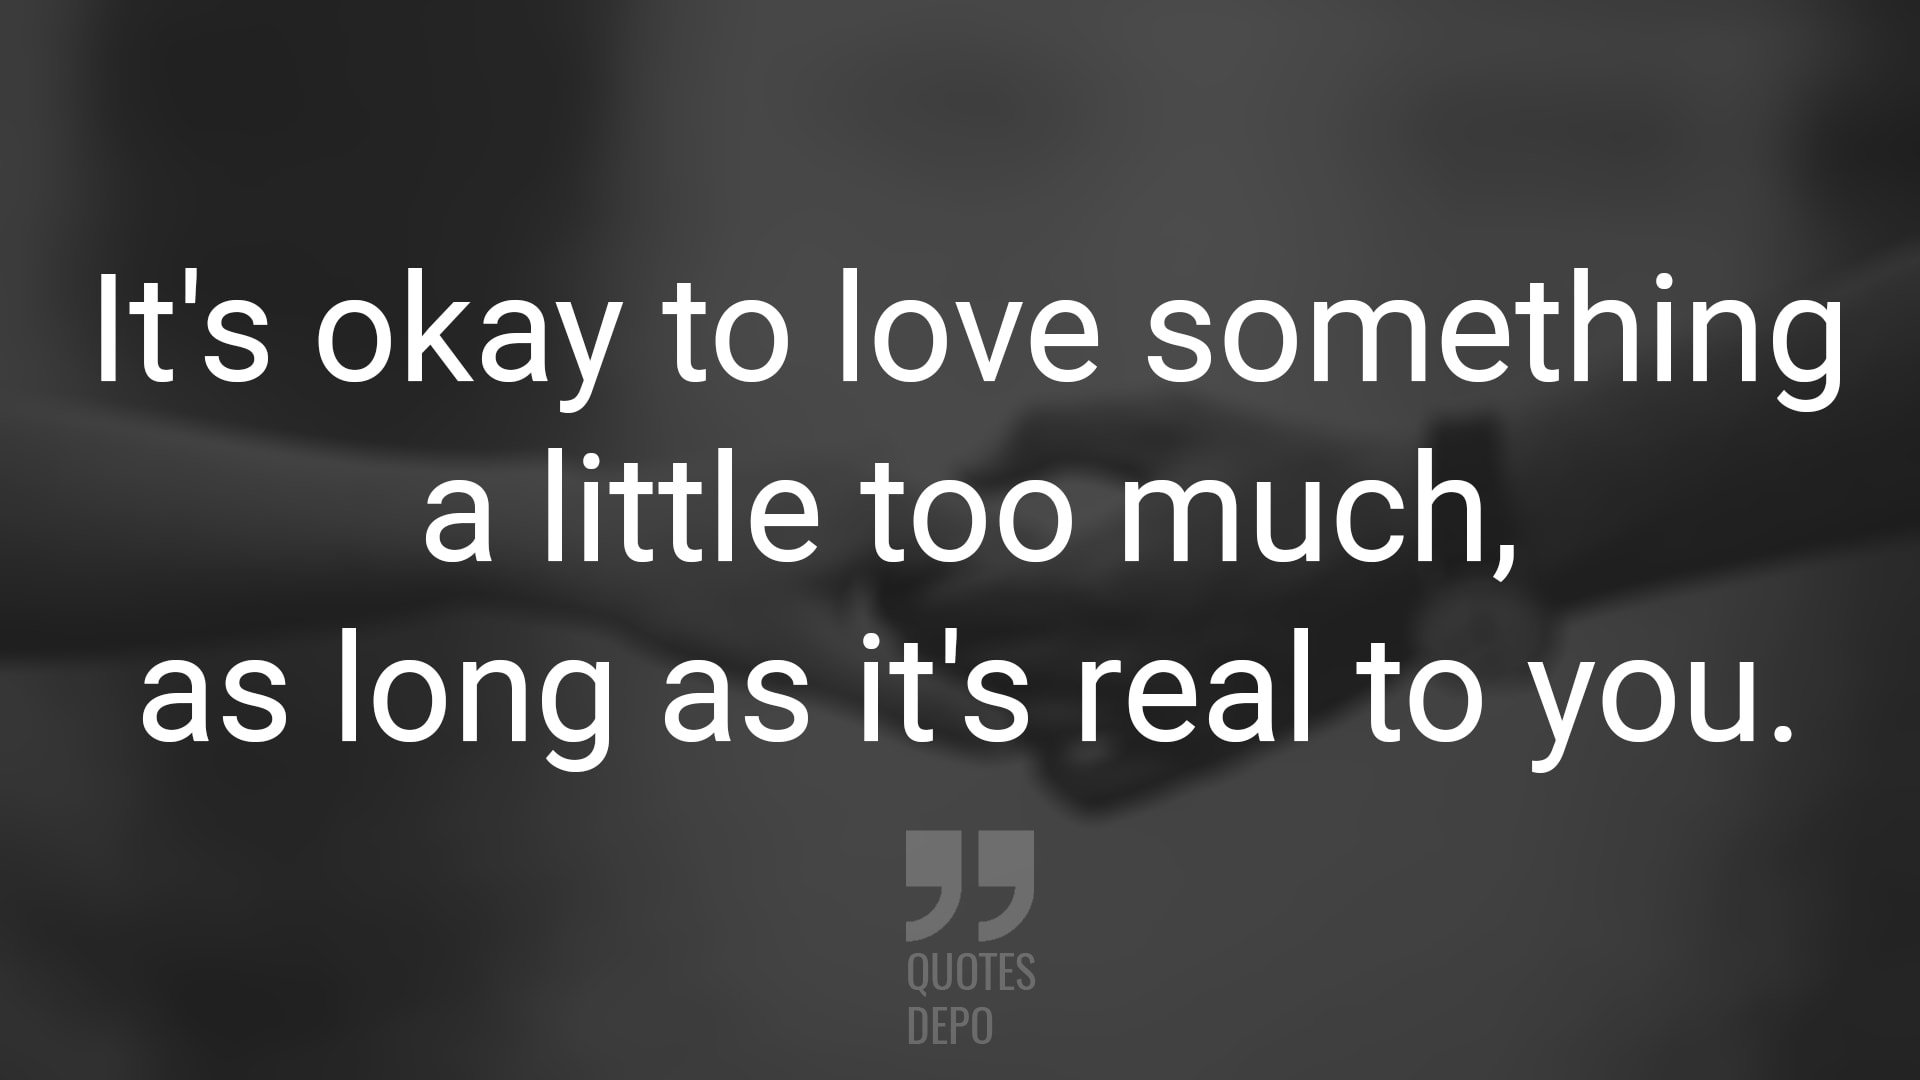 It's Okay to Love Something